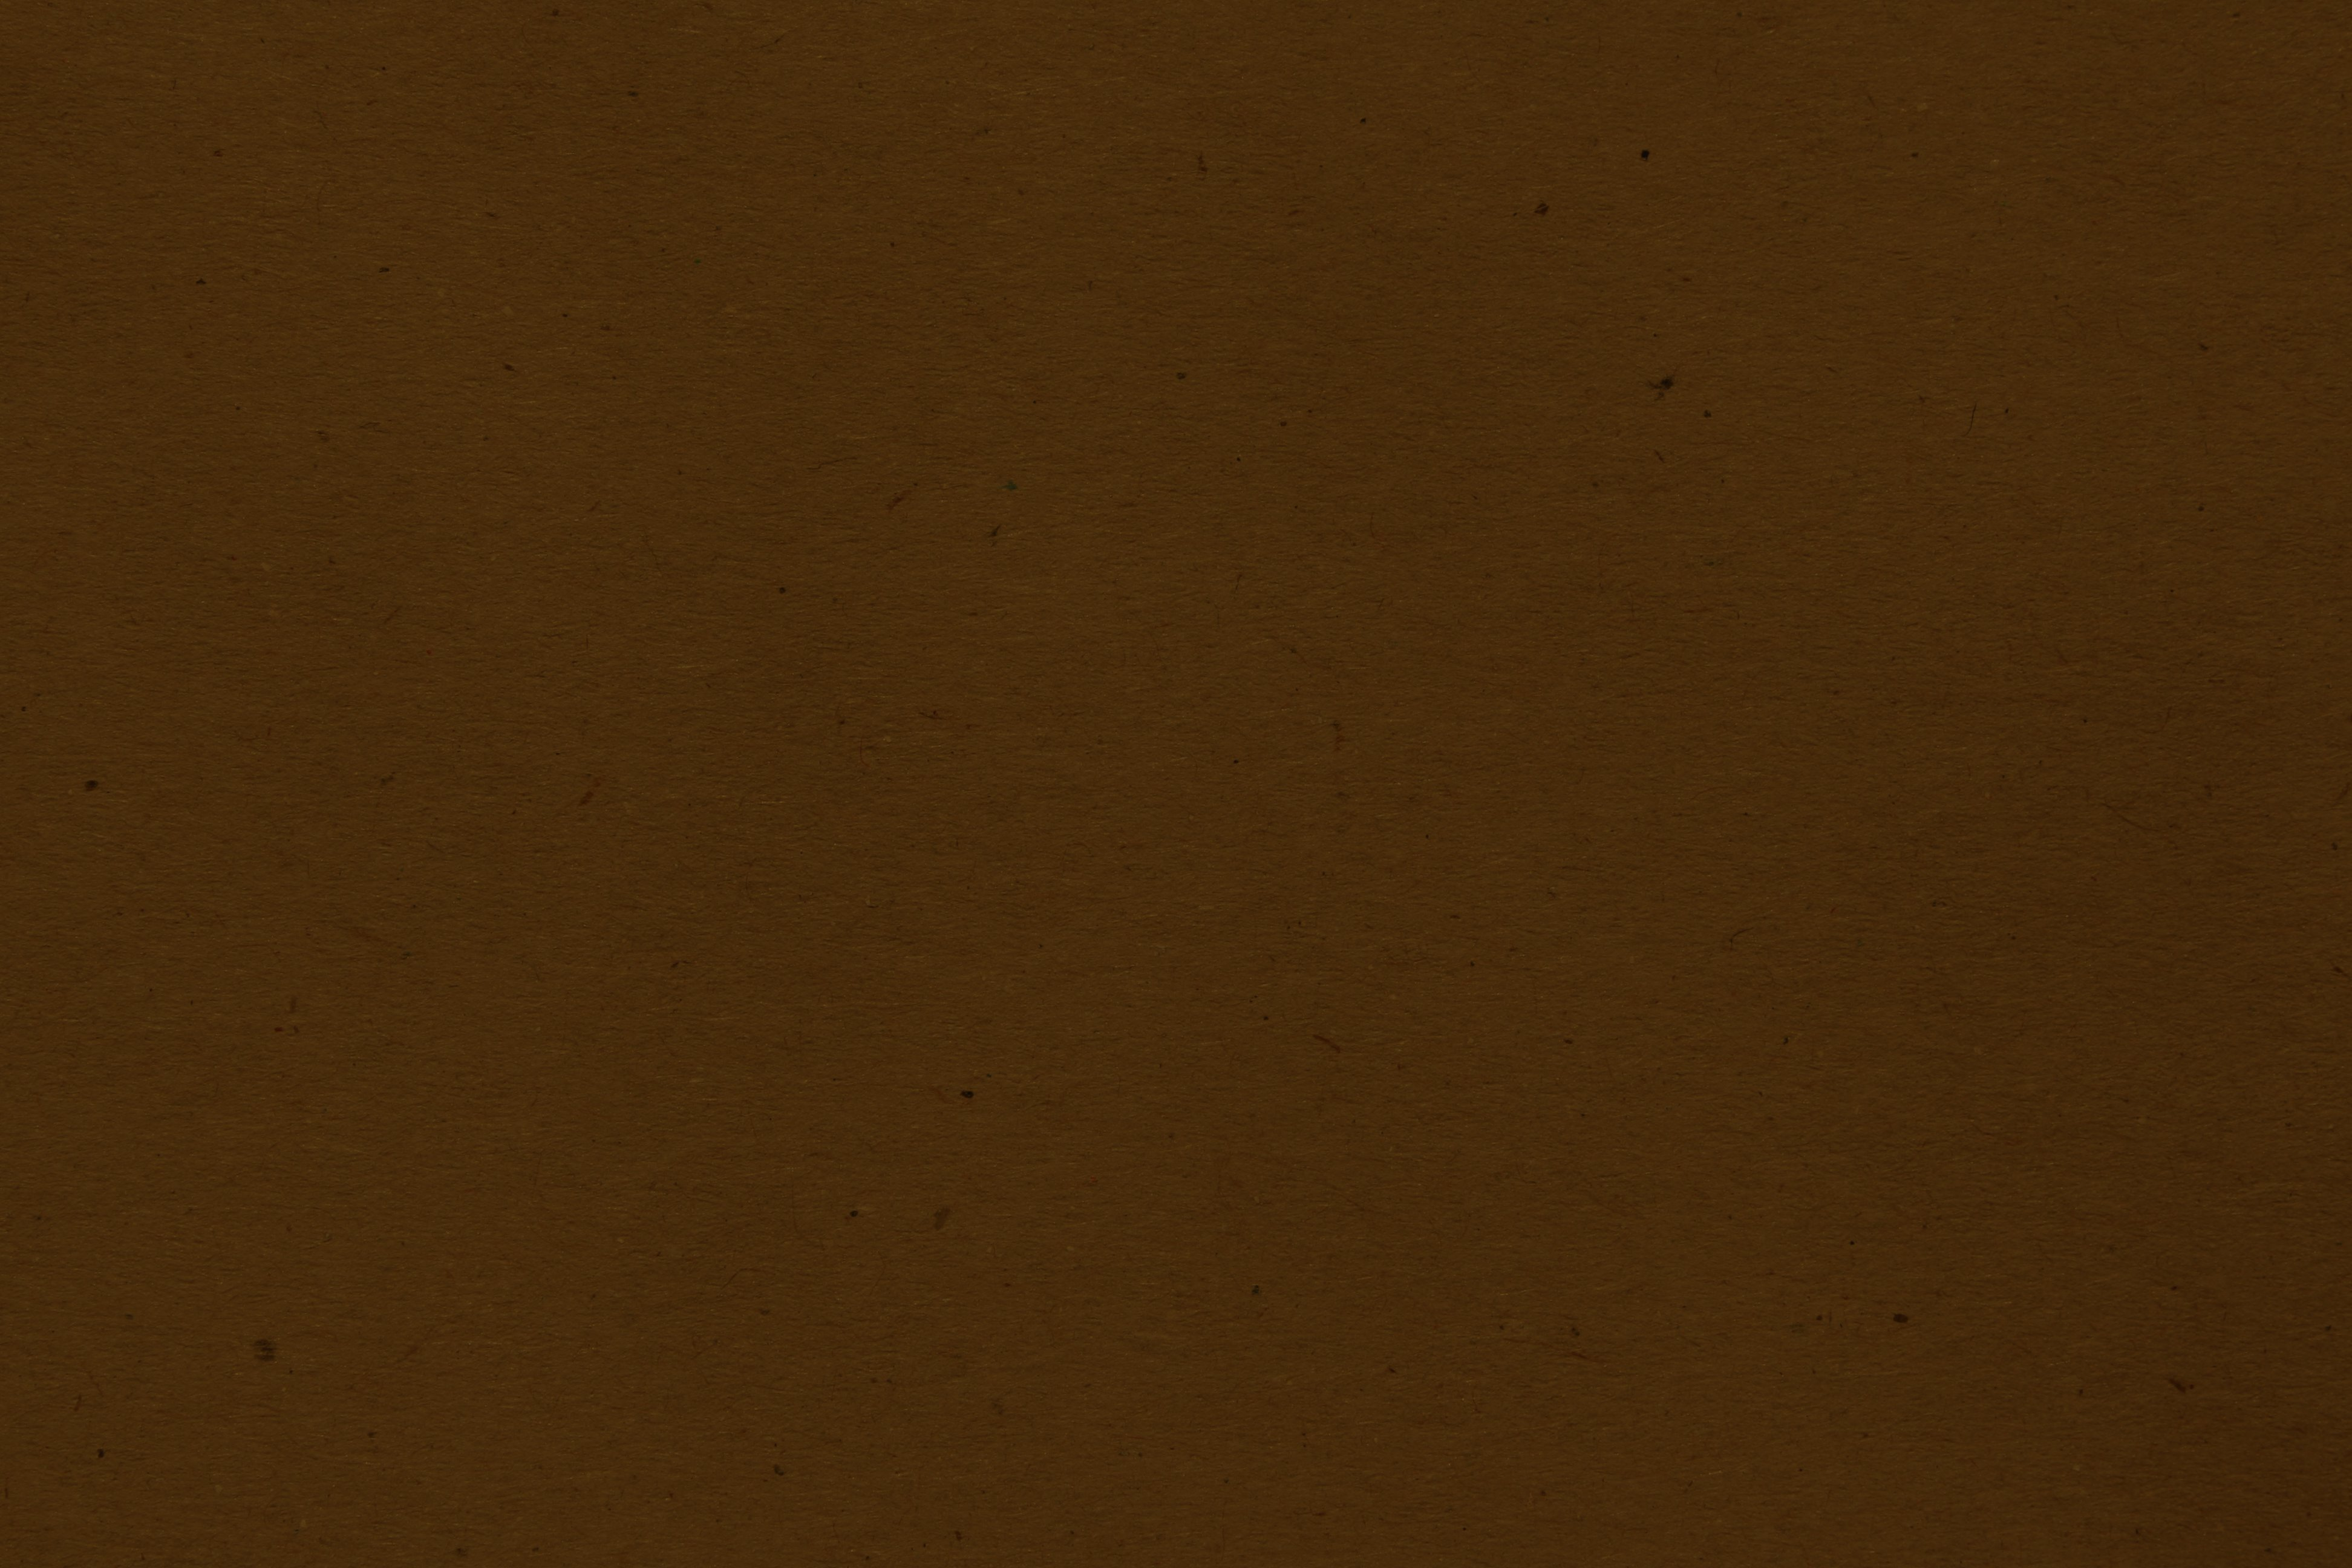 Brown Paper Texture With Flecks Picture Free Photograph